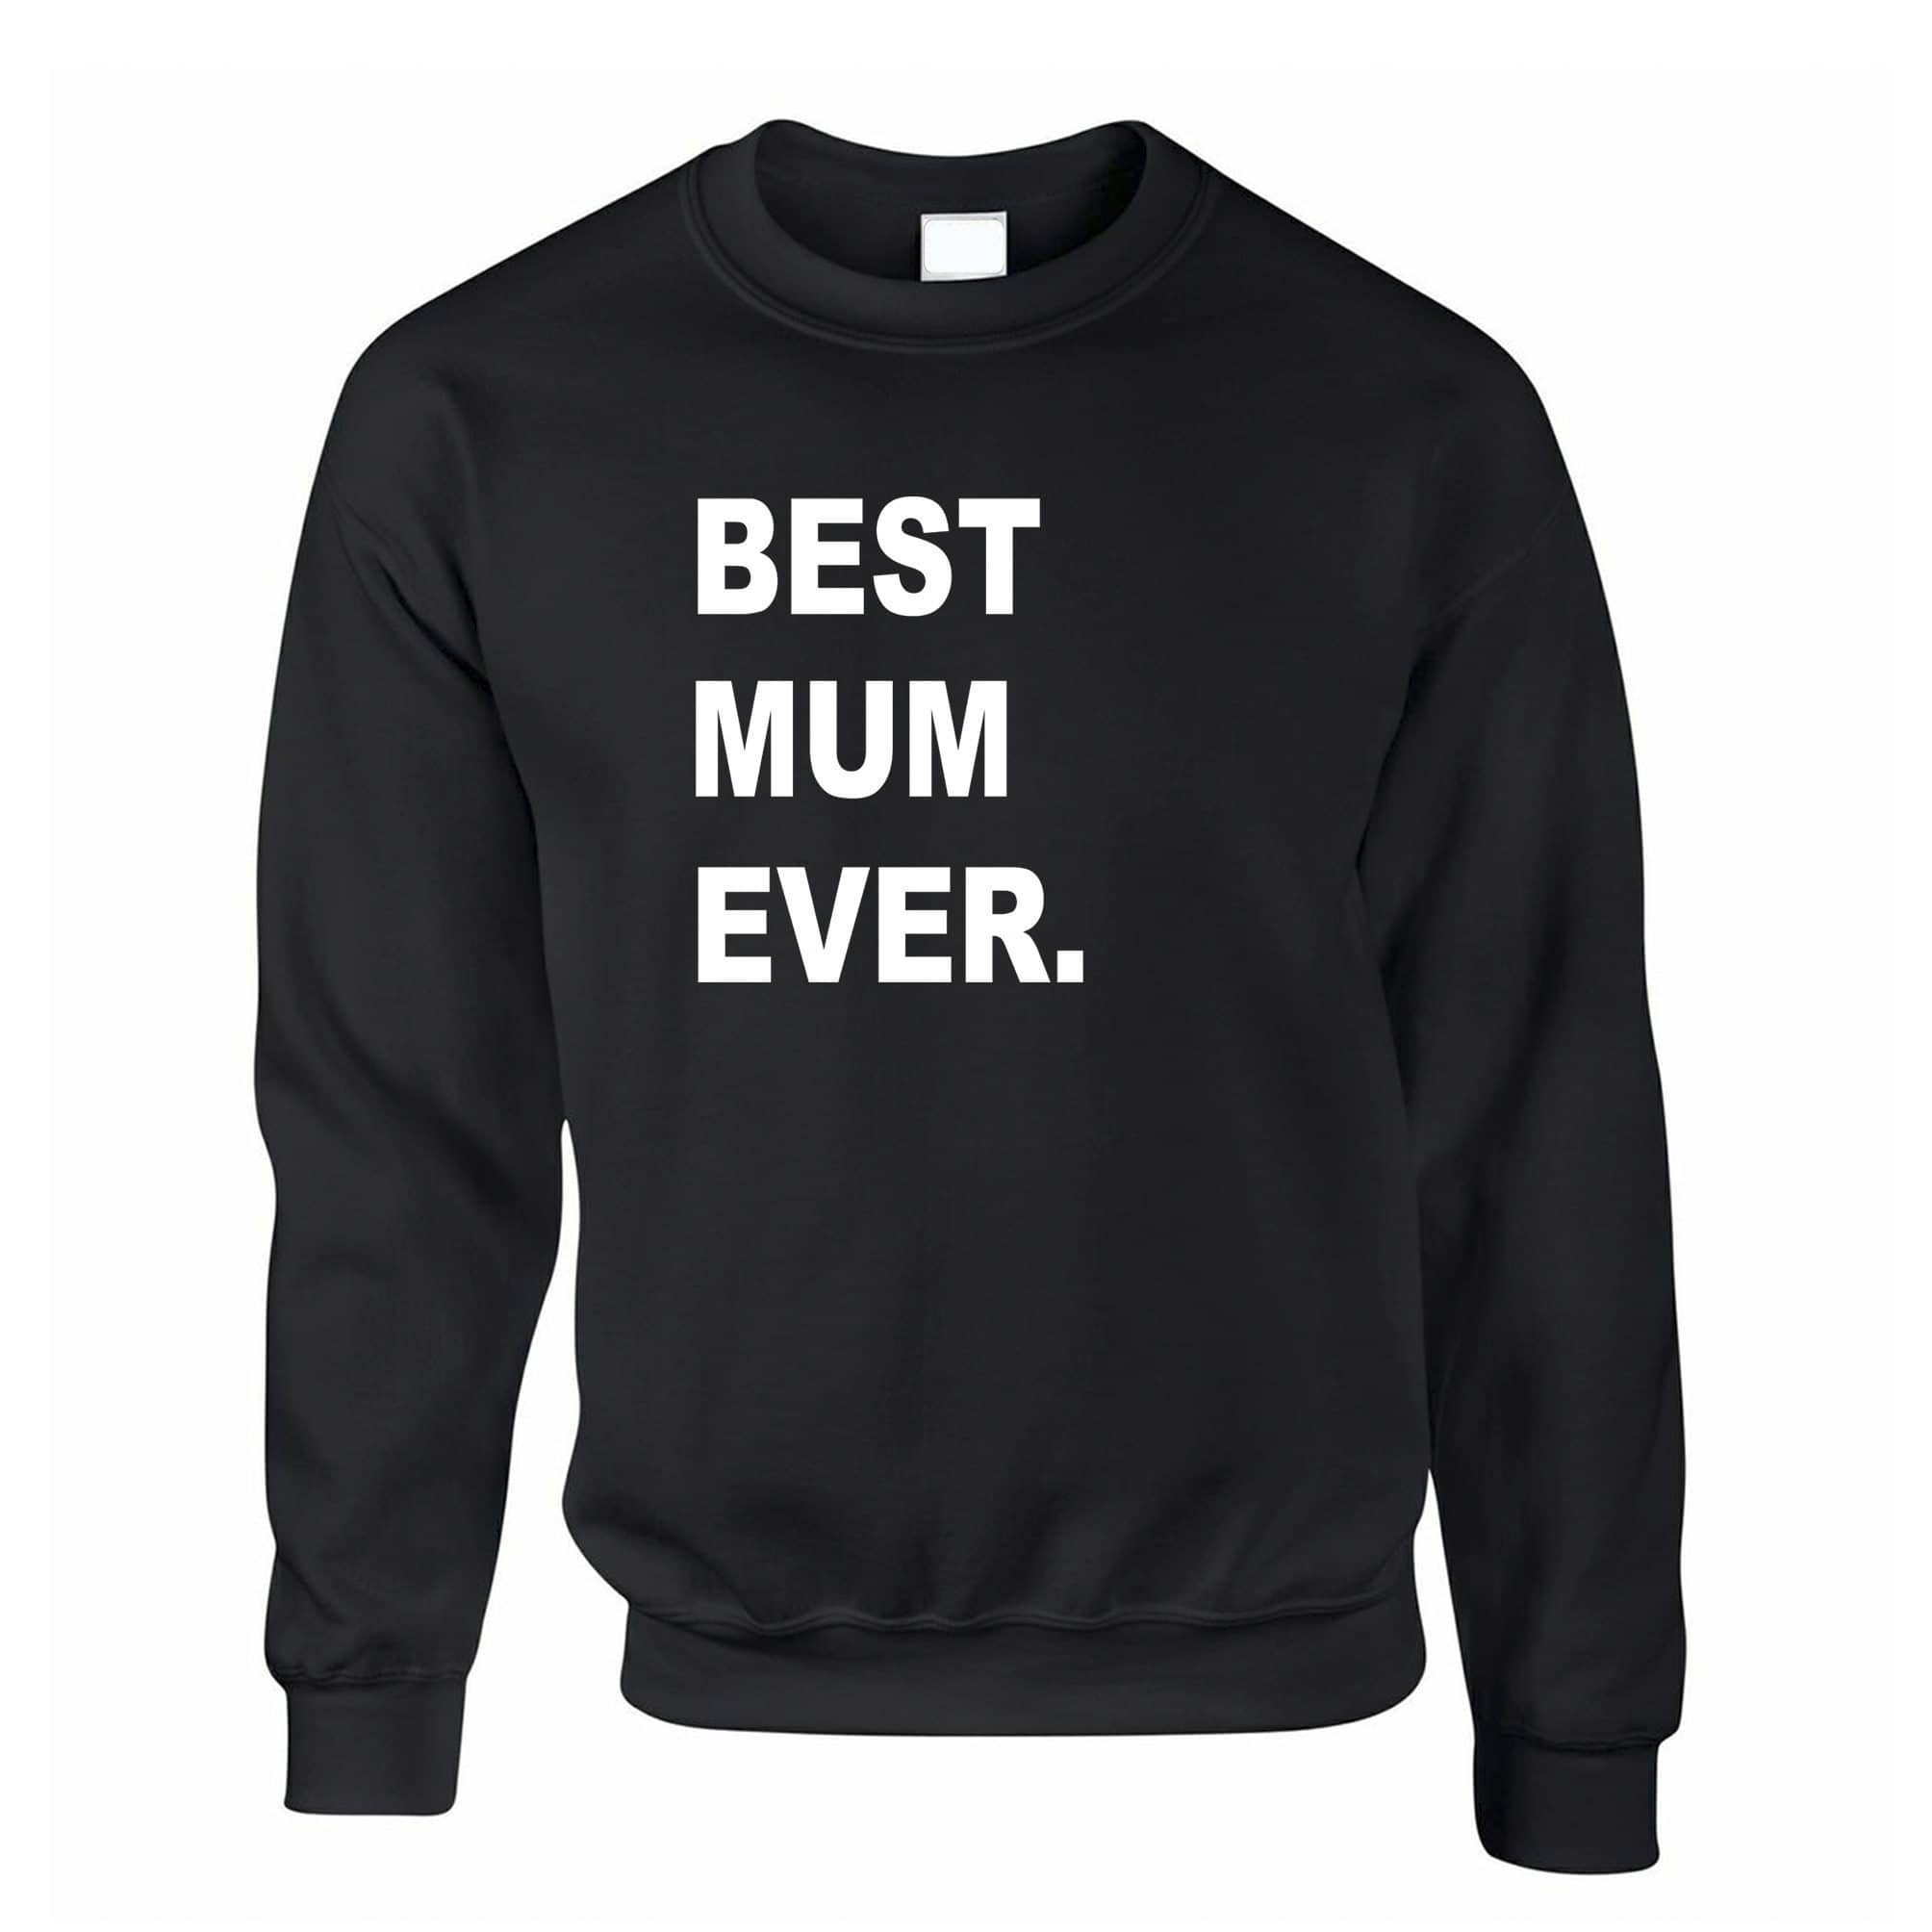 Best Mum Ever Jumper Parent Family Slogan Sweatshirt Sweater